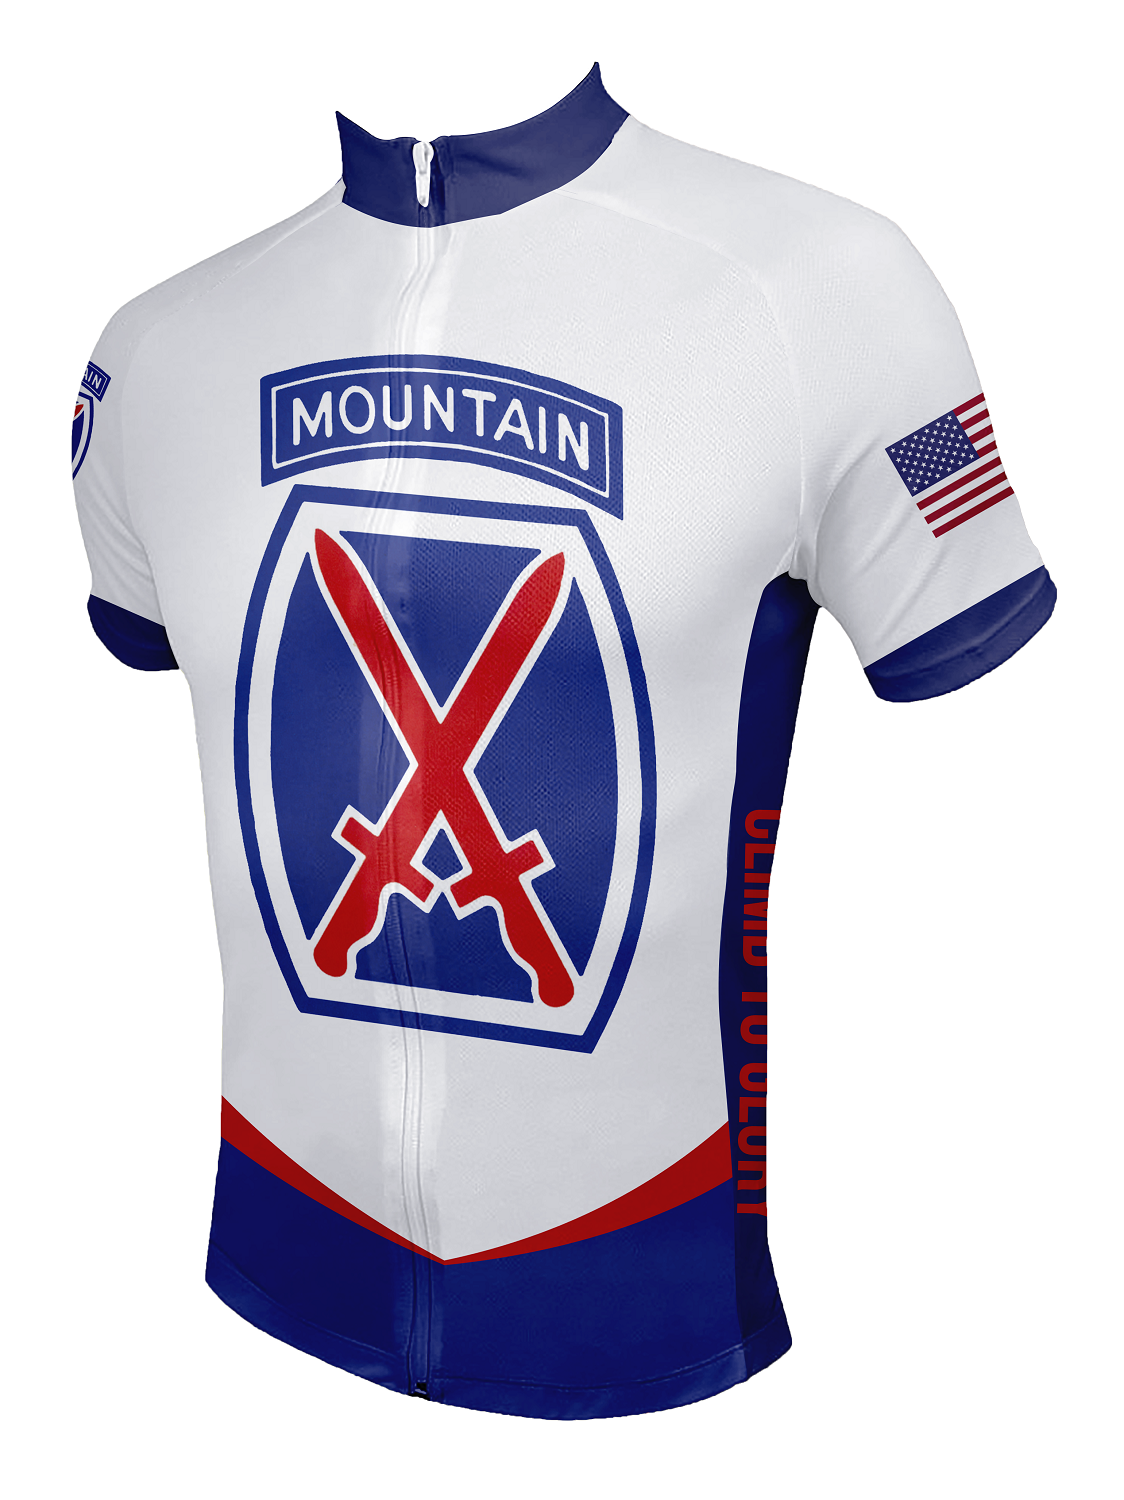 10th Mountain Division Cycling Jersey 4dc6b2790